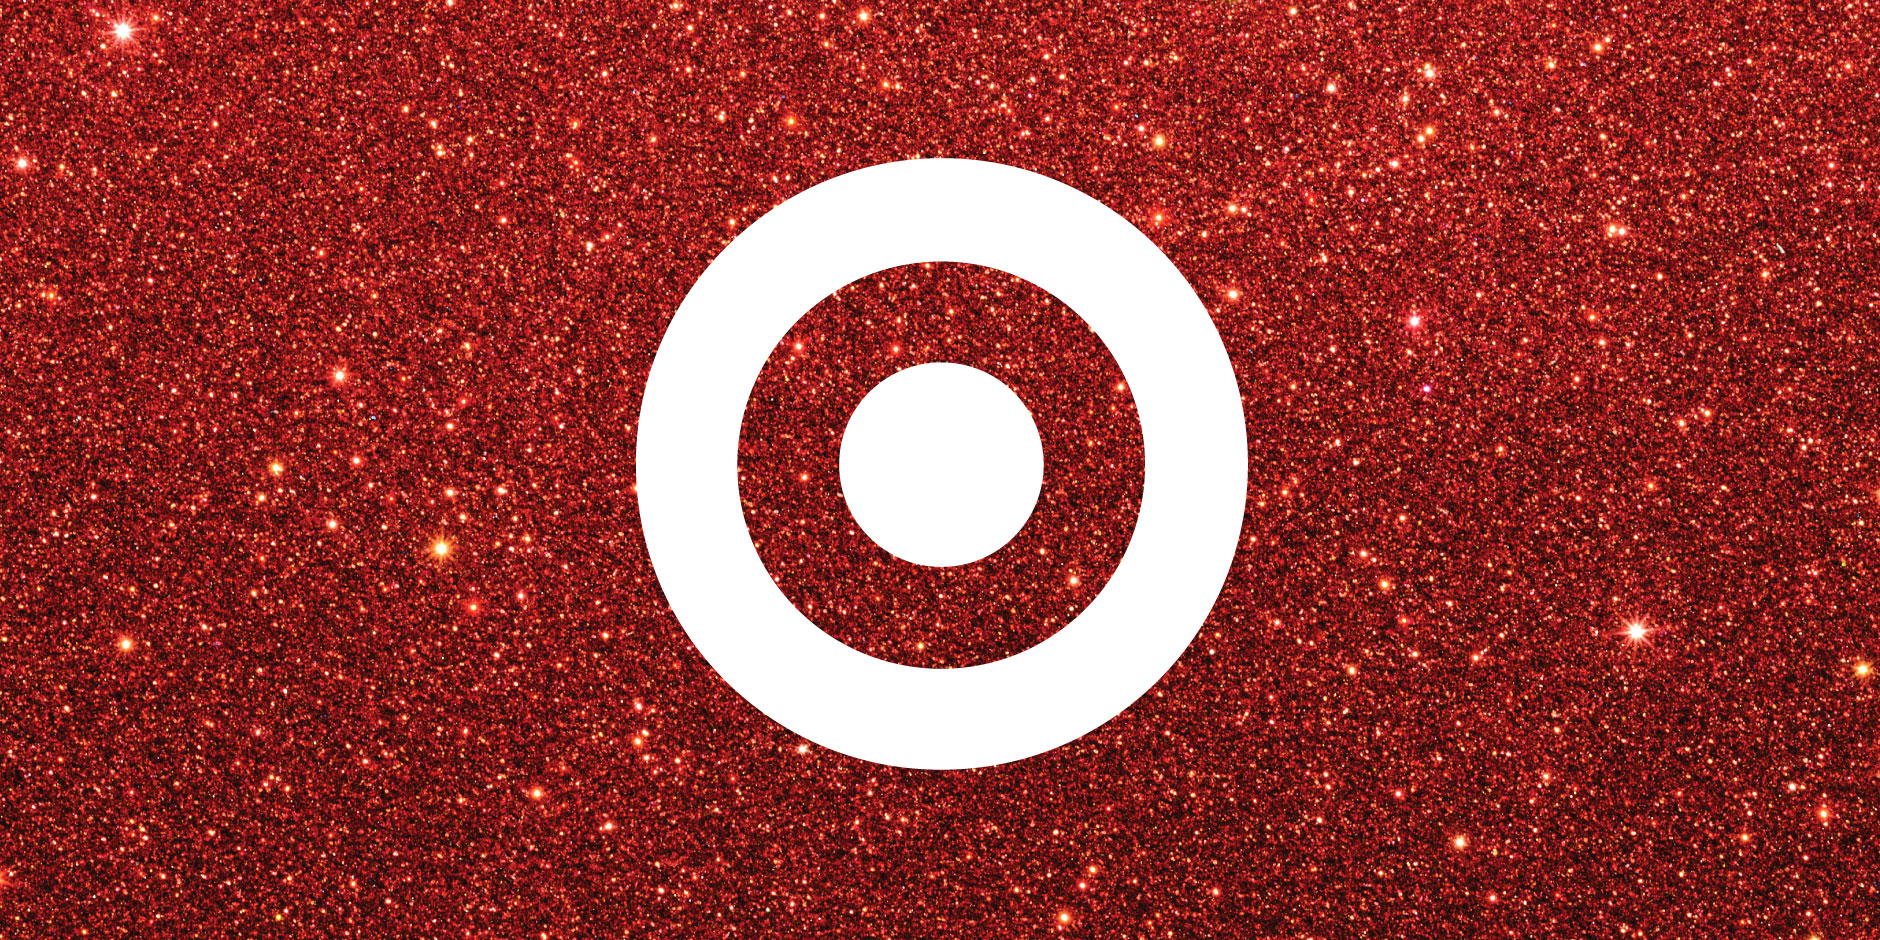 A white bullseye against a sparkly red background